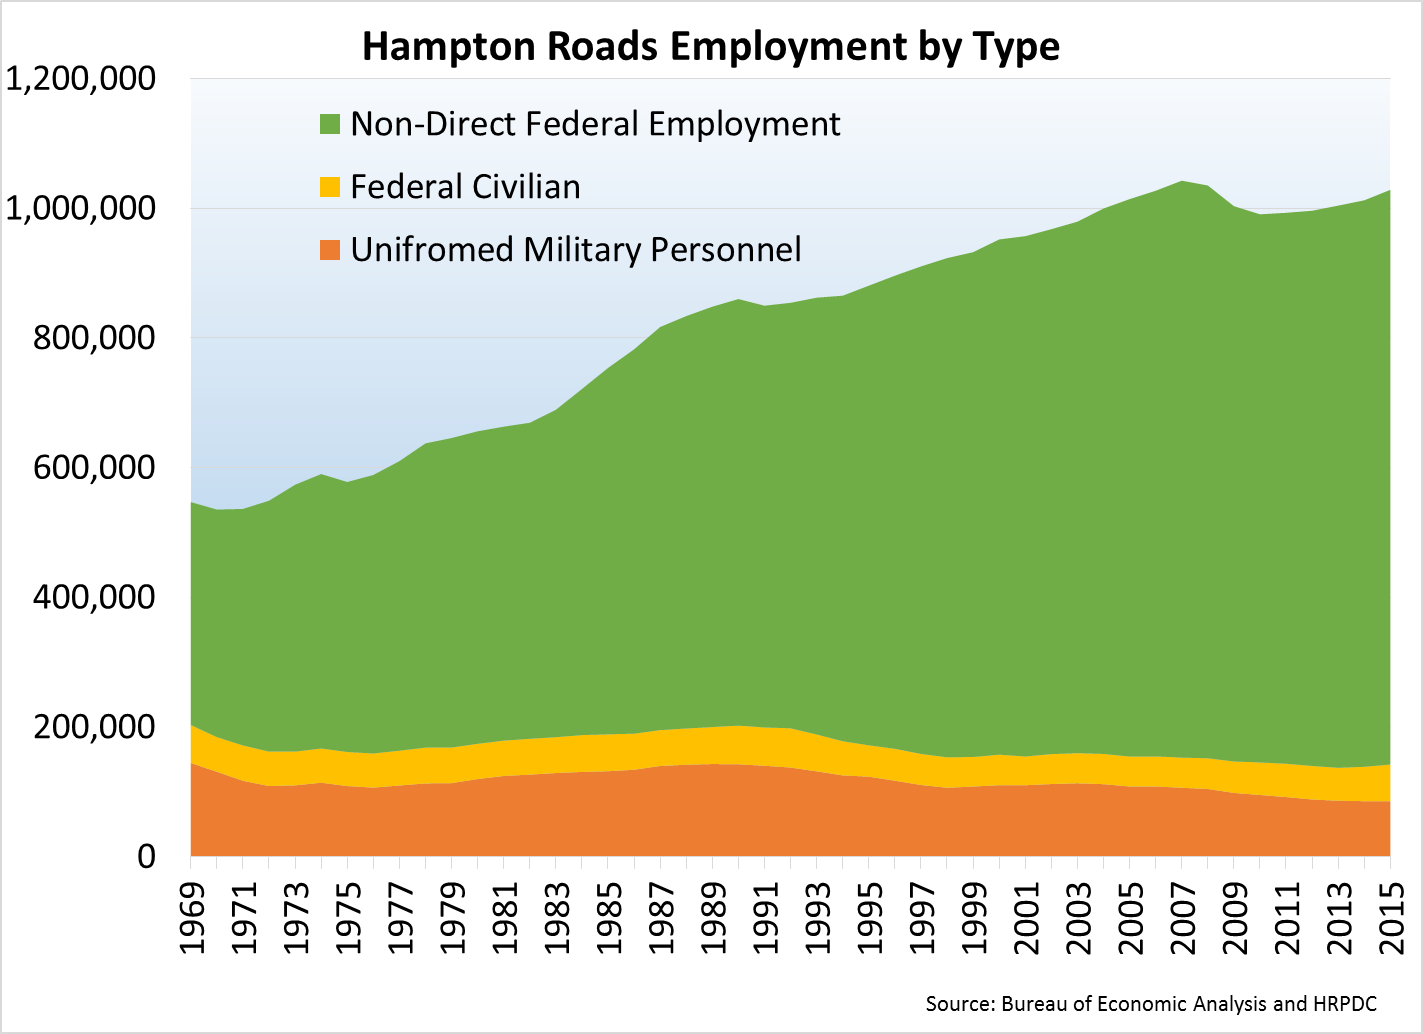 Hampton Roads Employment by Type